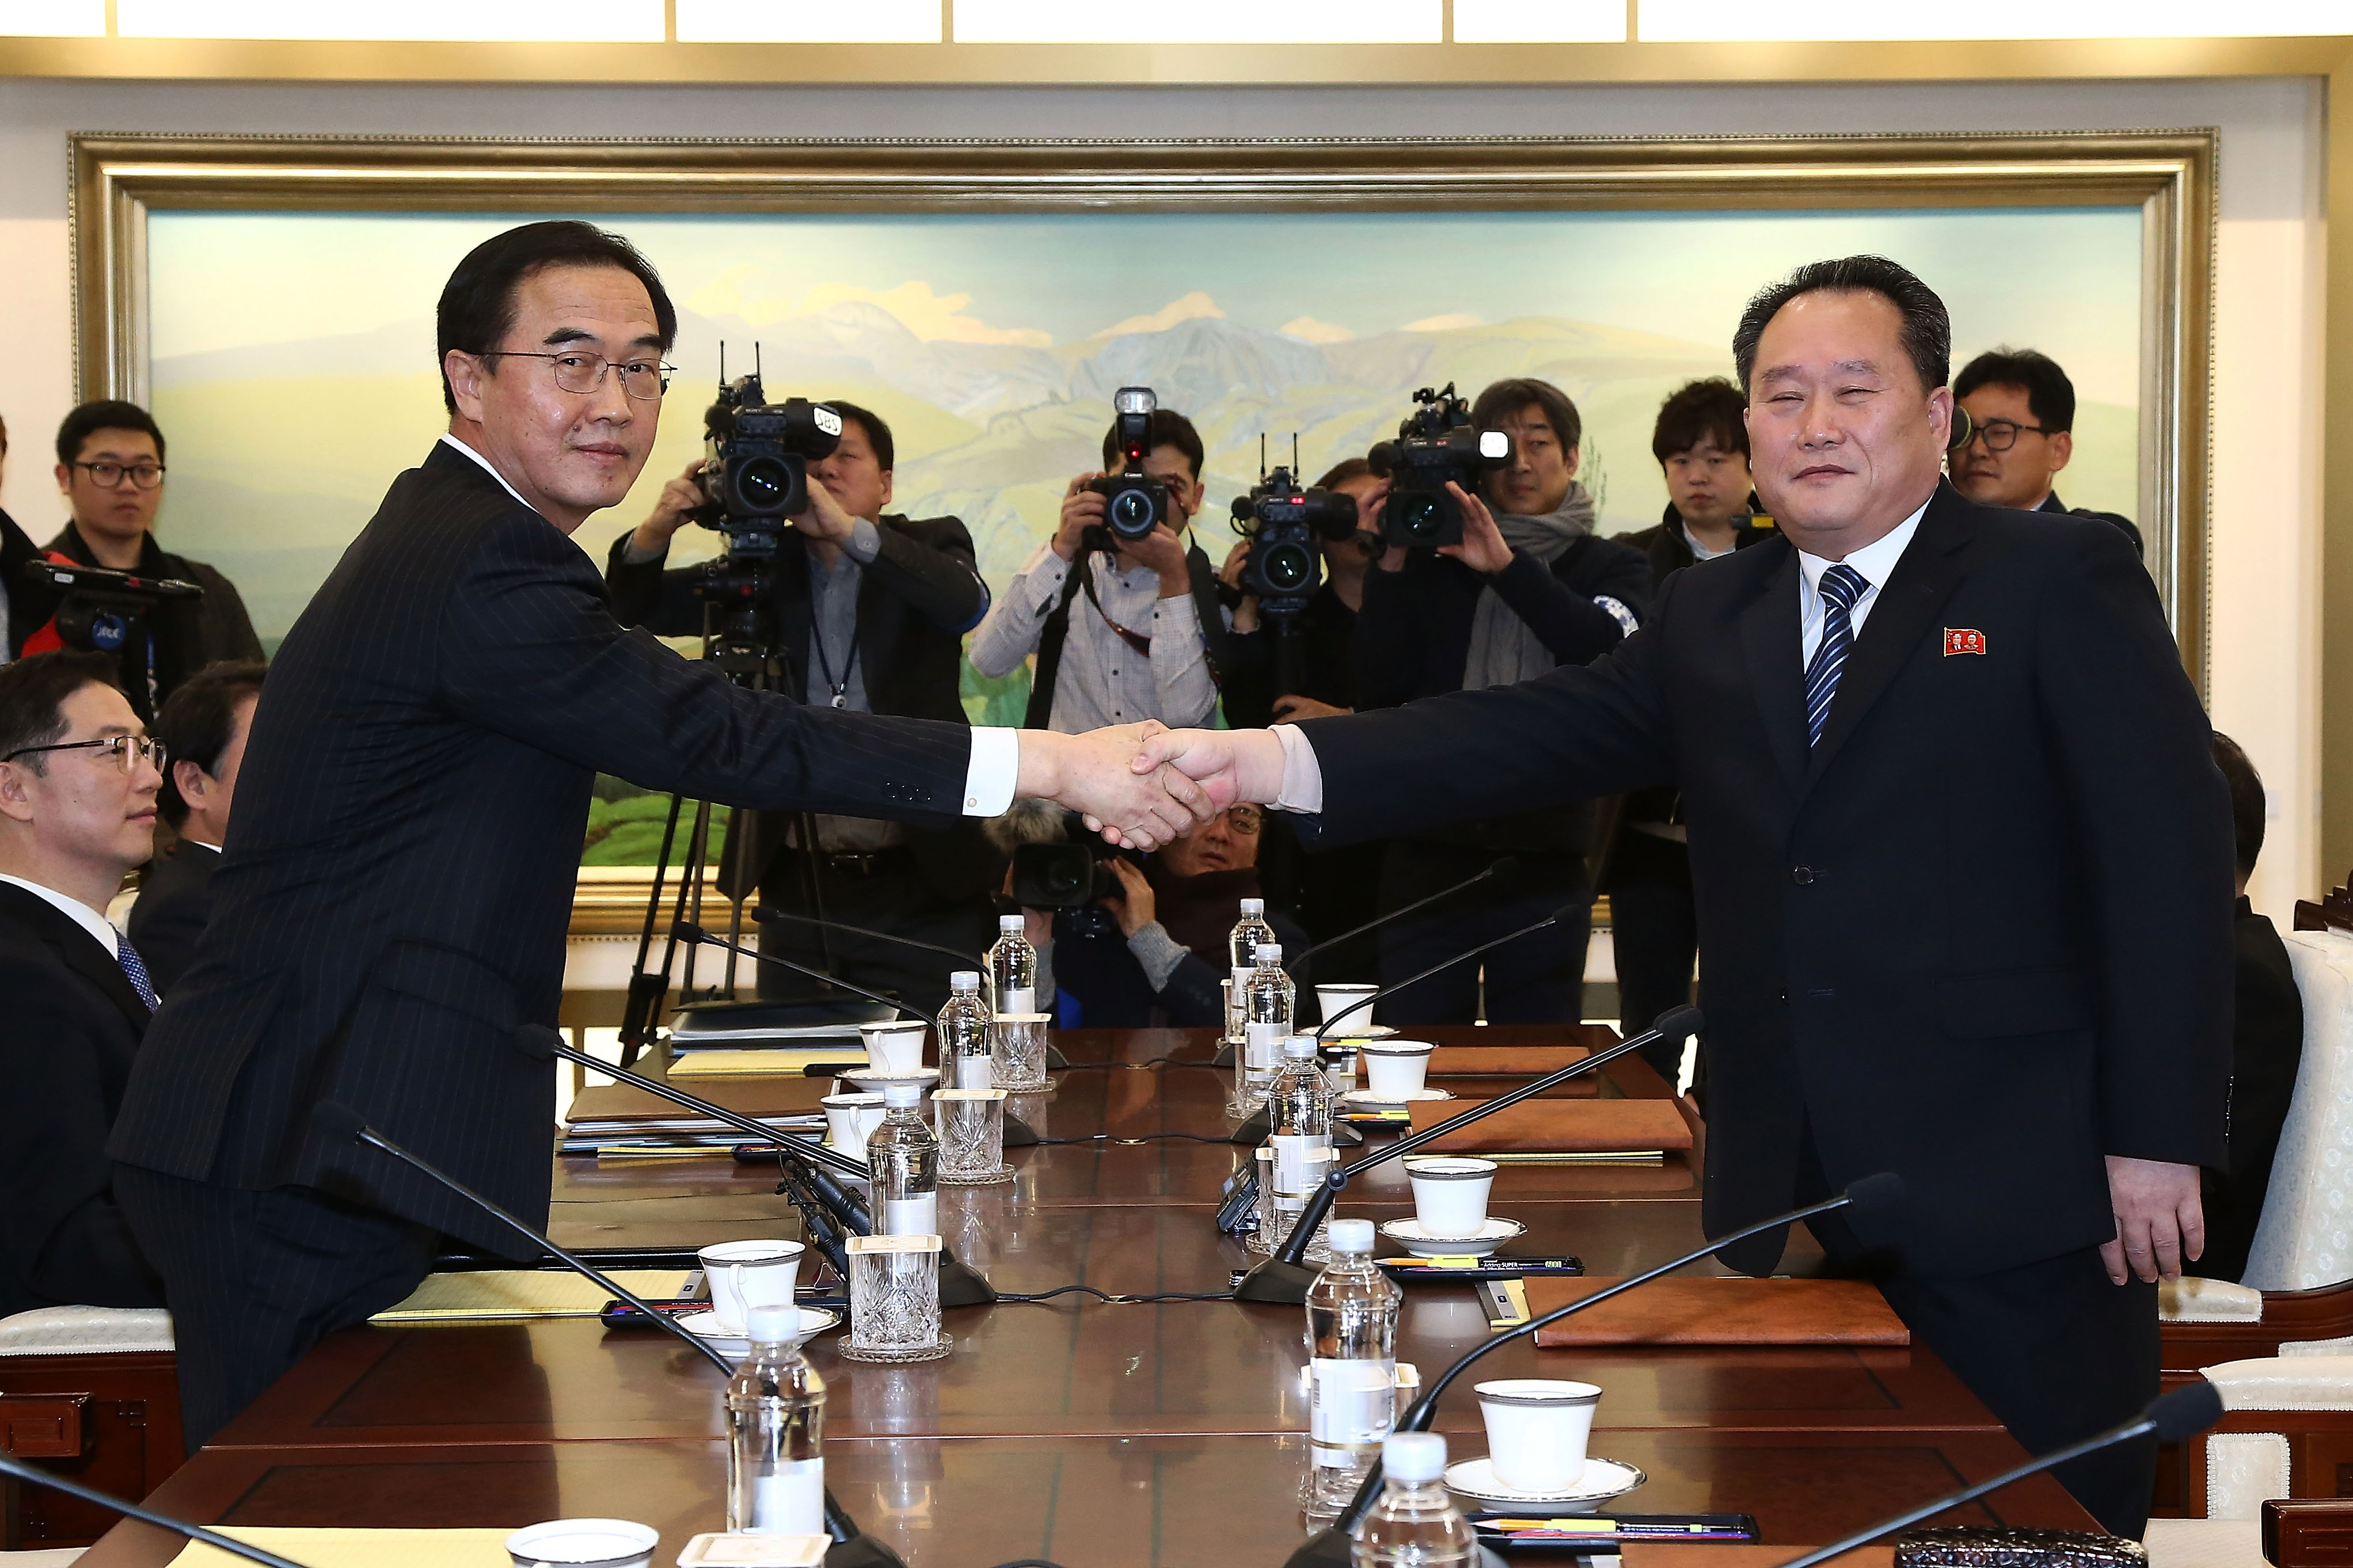 South Korean Unification Minister Cho Myoung-gyon shakes hands with the head of North Korean delegation Ri Son-Gwon before their meeting at the Panmunjom in the DMZ on Jan. 9, 2018.